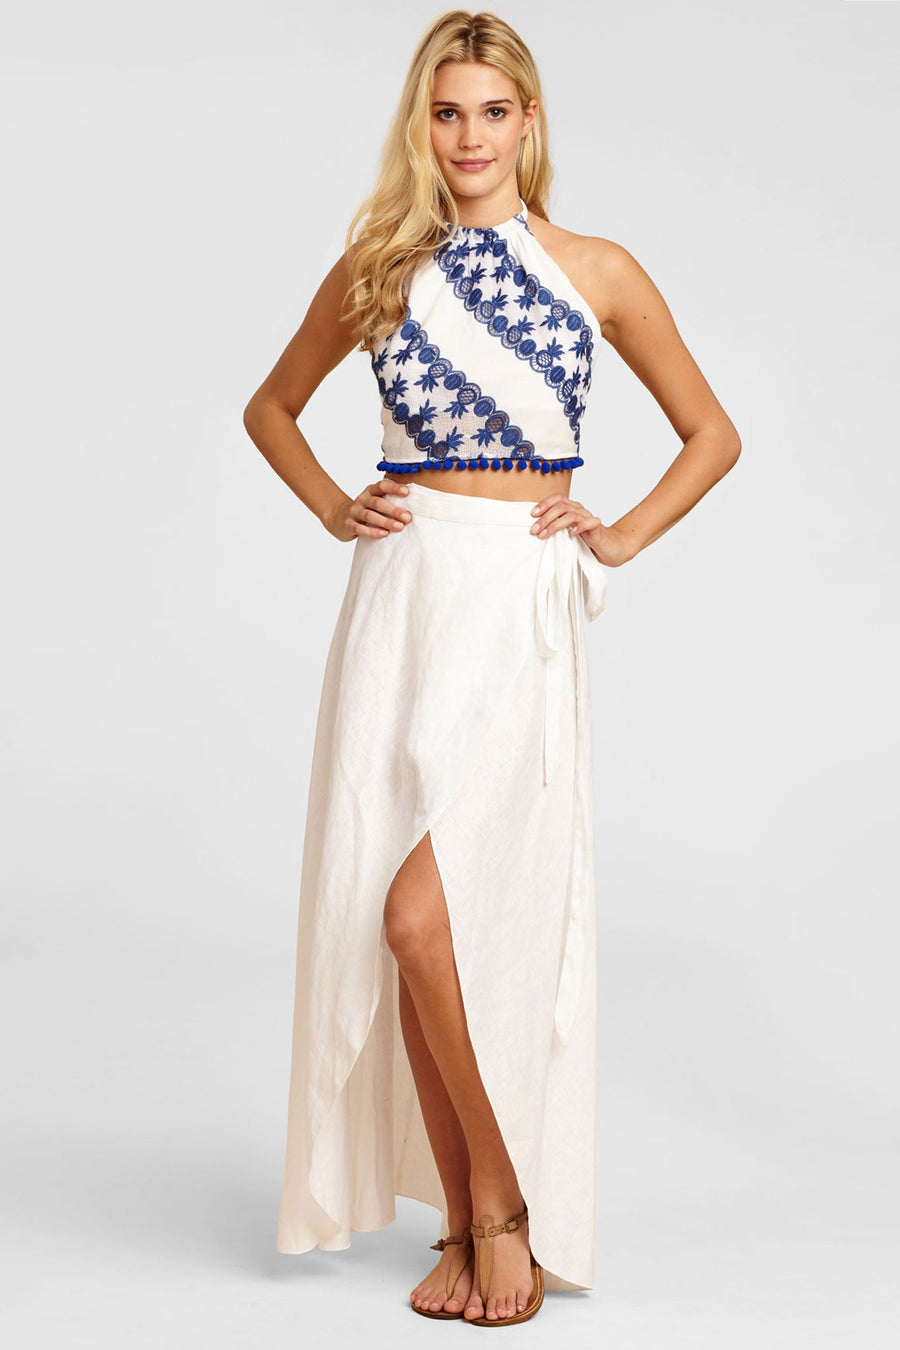 This is a photo of a white linen wrap skirt that splits open in the front and ties on one side. The skirt is worn here with a white and blue halter top with blue pineapples on it and blue pom poms at the hemline.